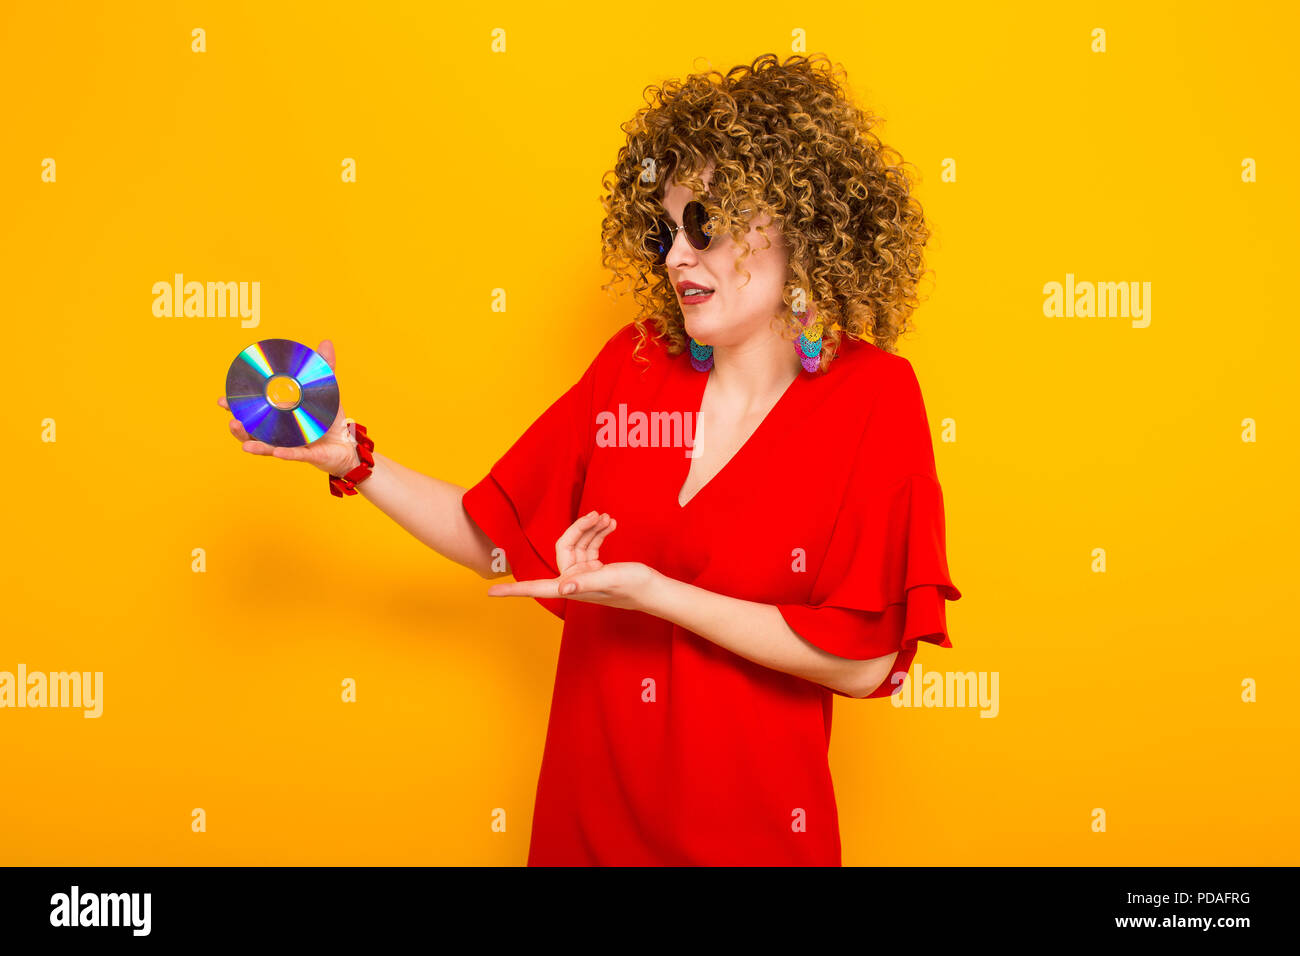 Attractive woman with curly hair with disc - Stock Image